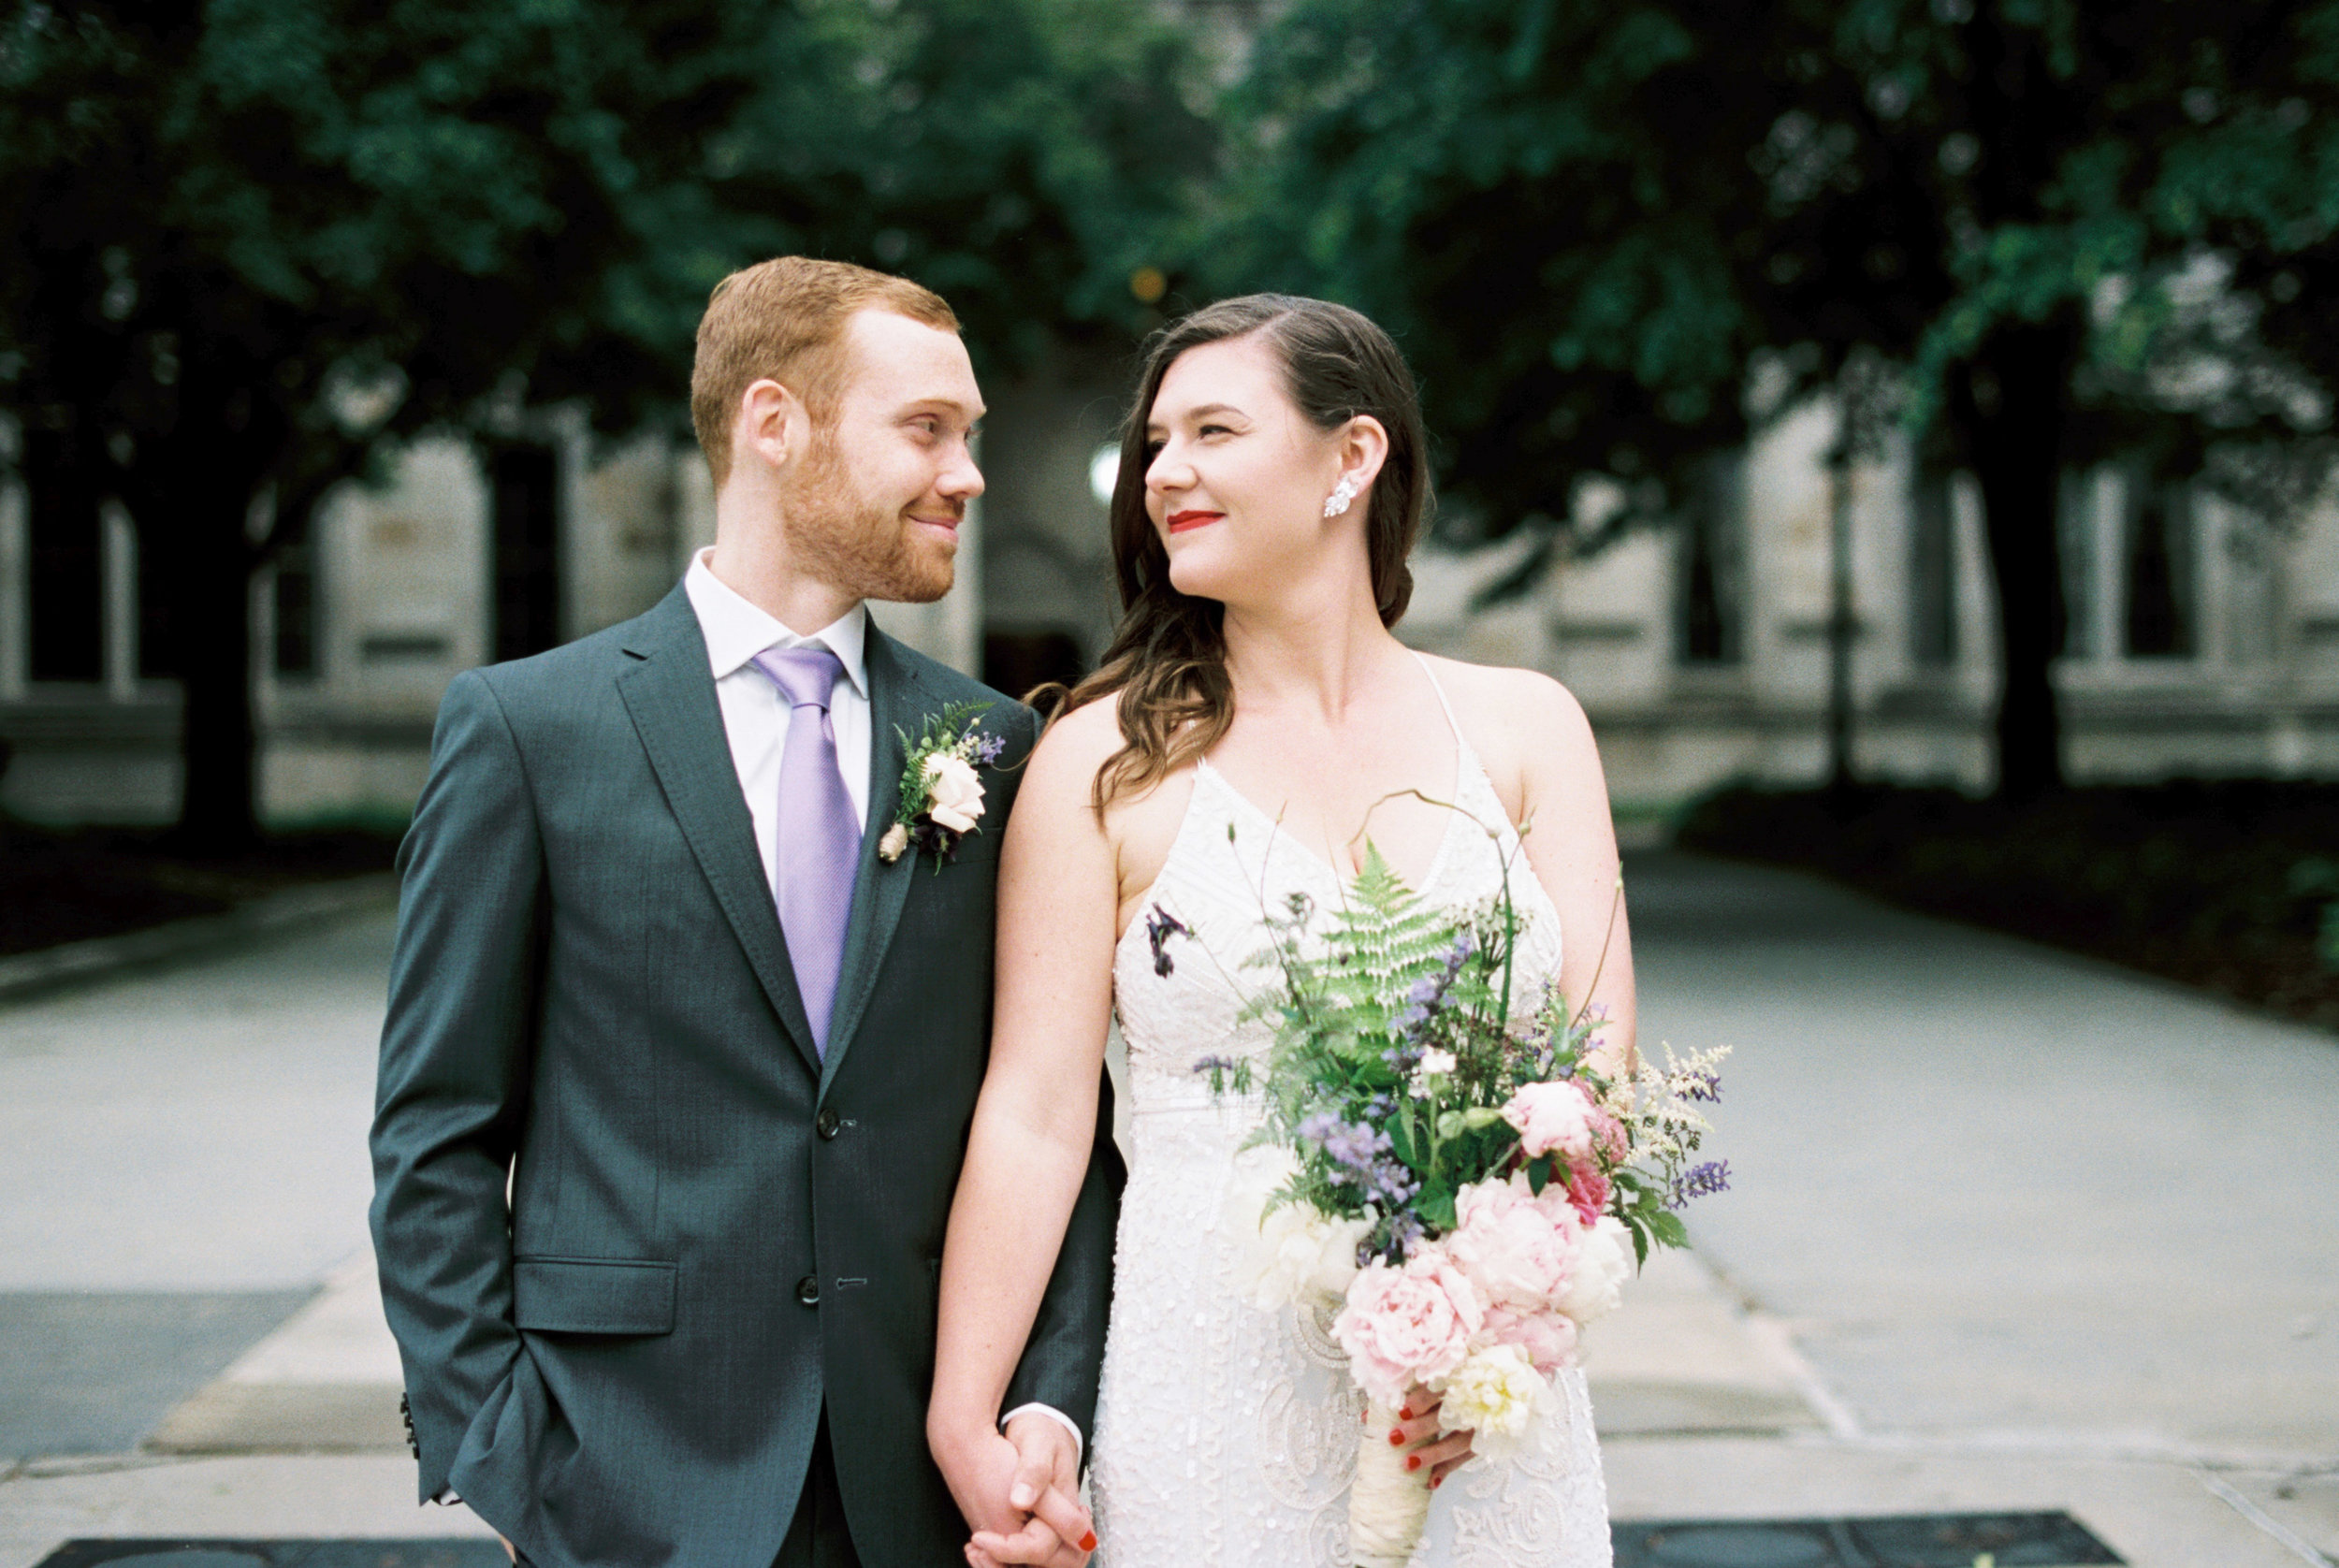 When we got engaged after being together for six years, I had questions: how do we get married? Do I change my name? And how do you get good at being married? Read more from Holl & Lane at hollandlanemag.com